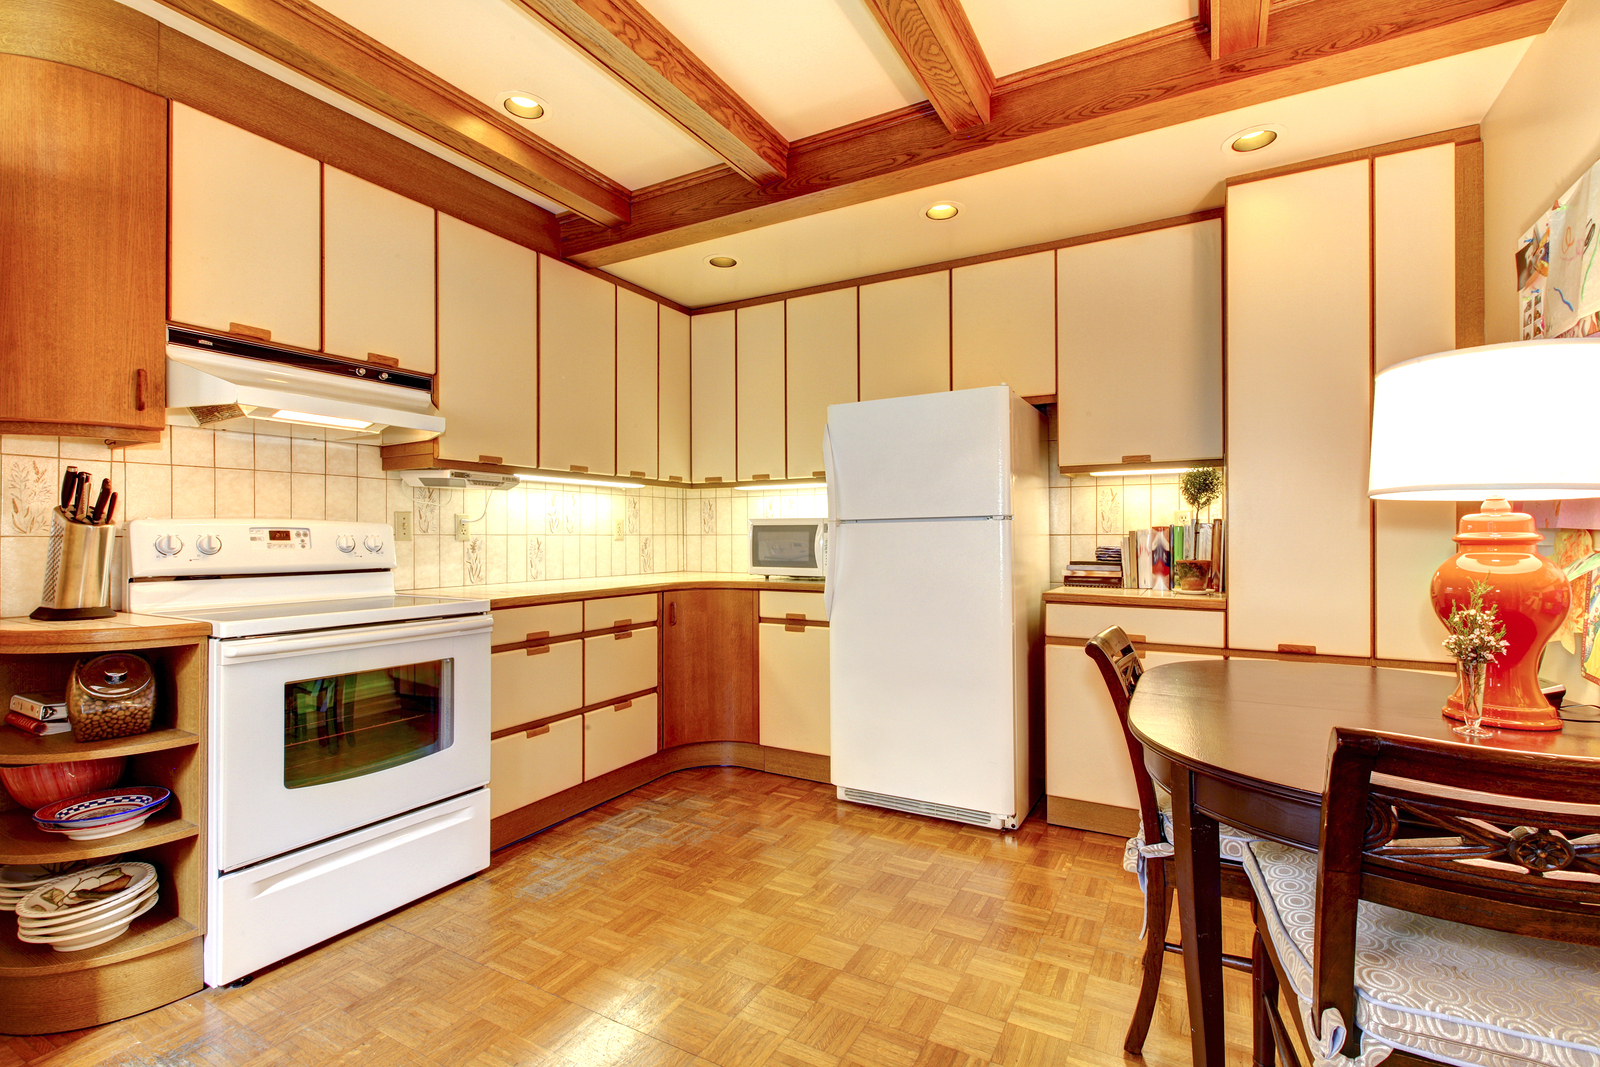 older outdated kitchen example